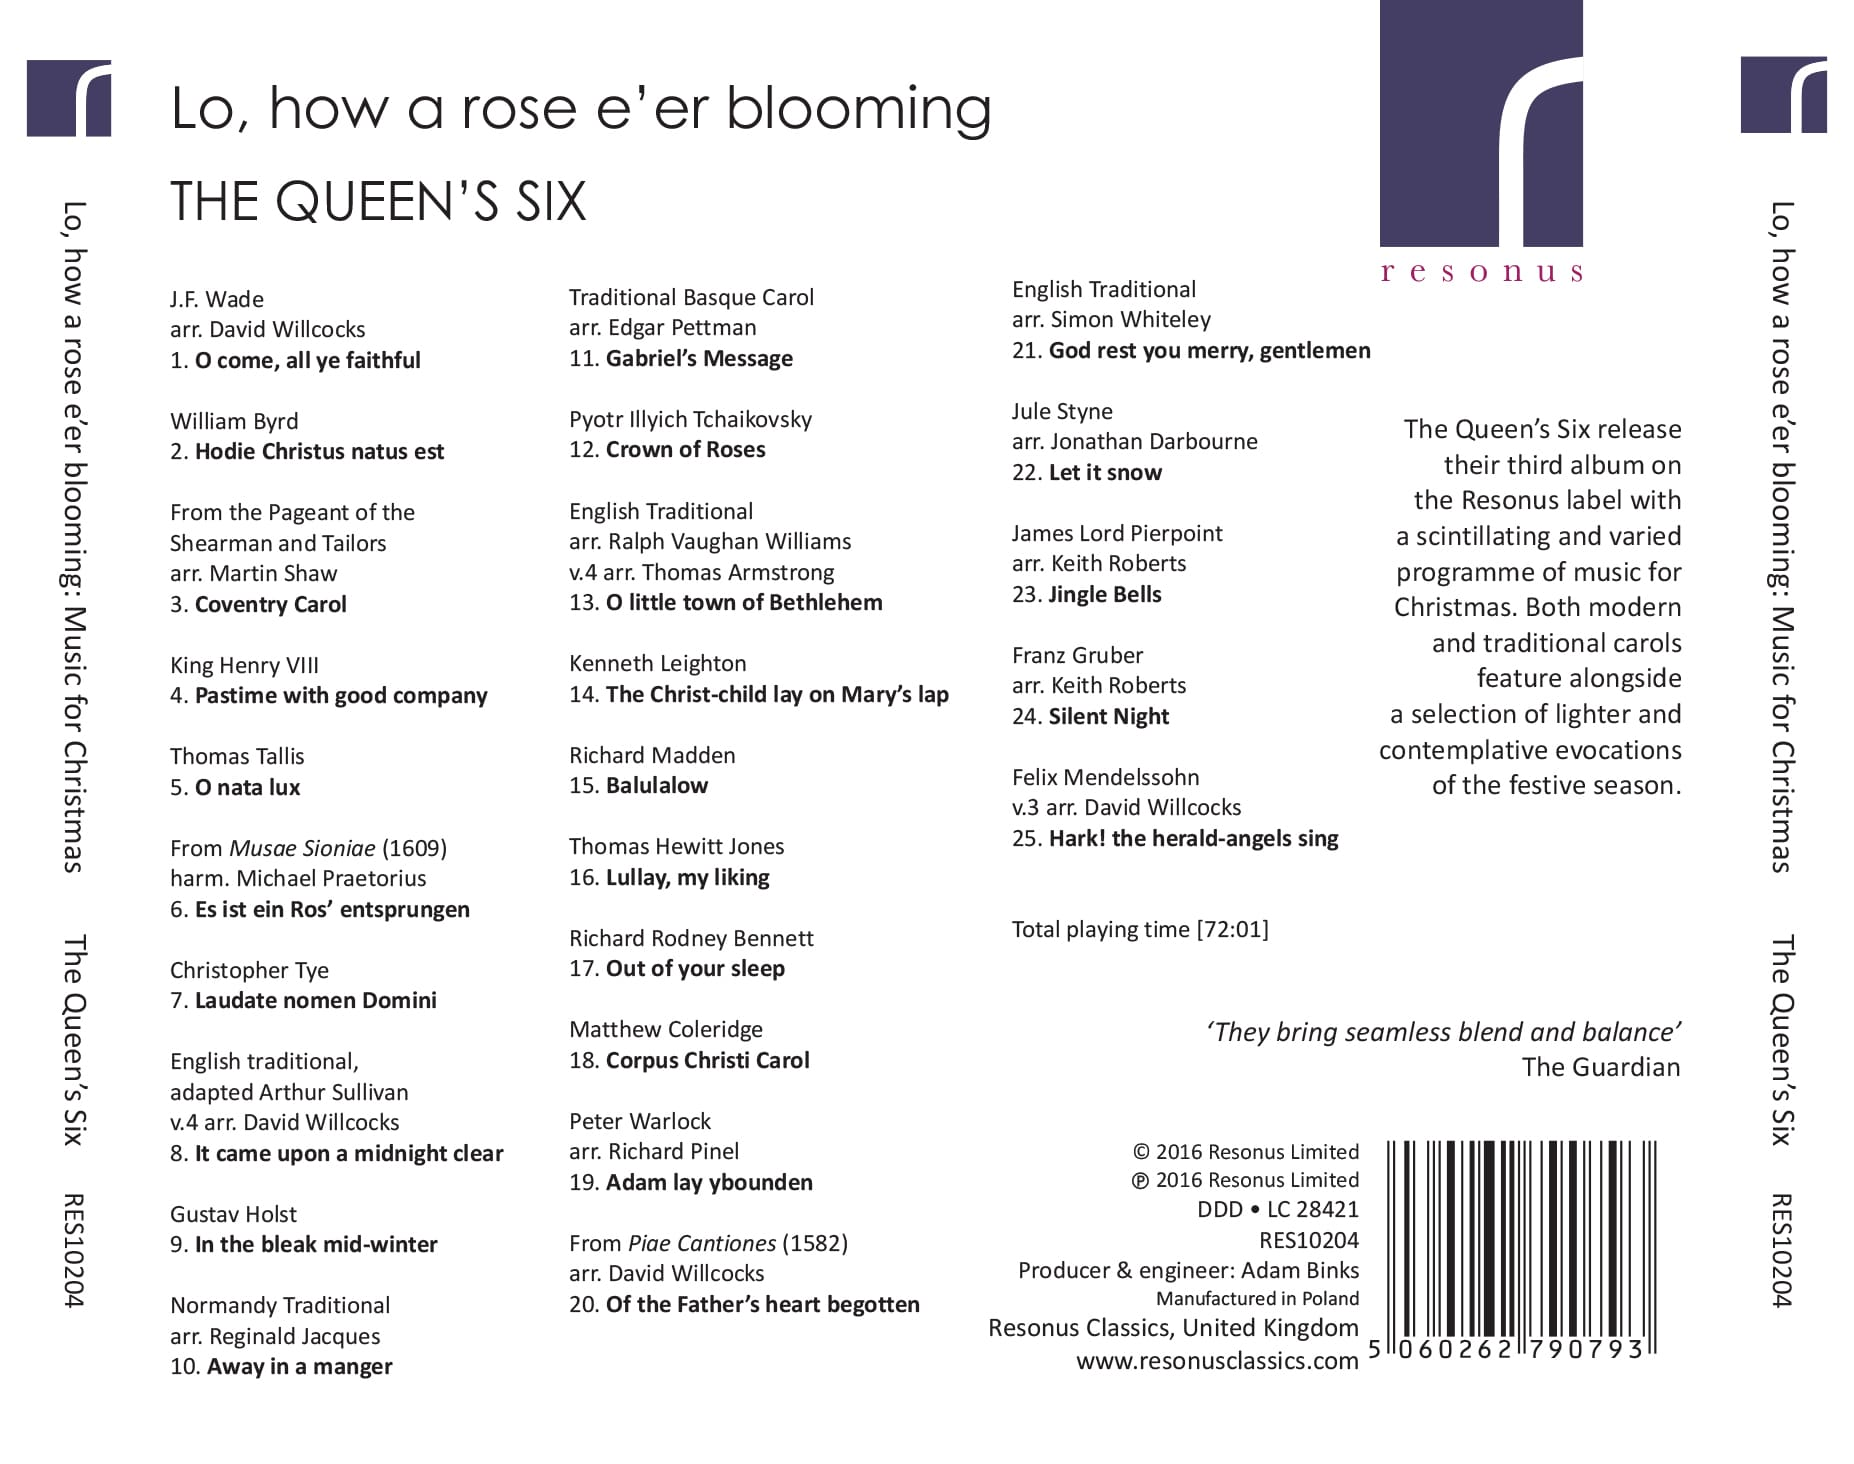 Lo, how a rose e'er blooming album back